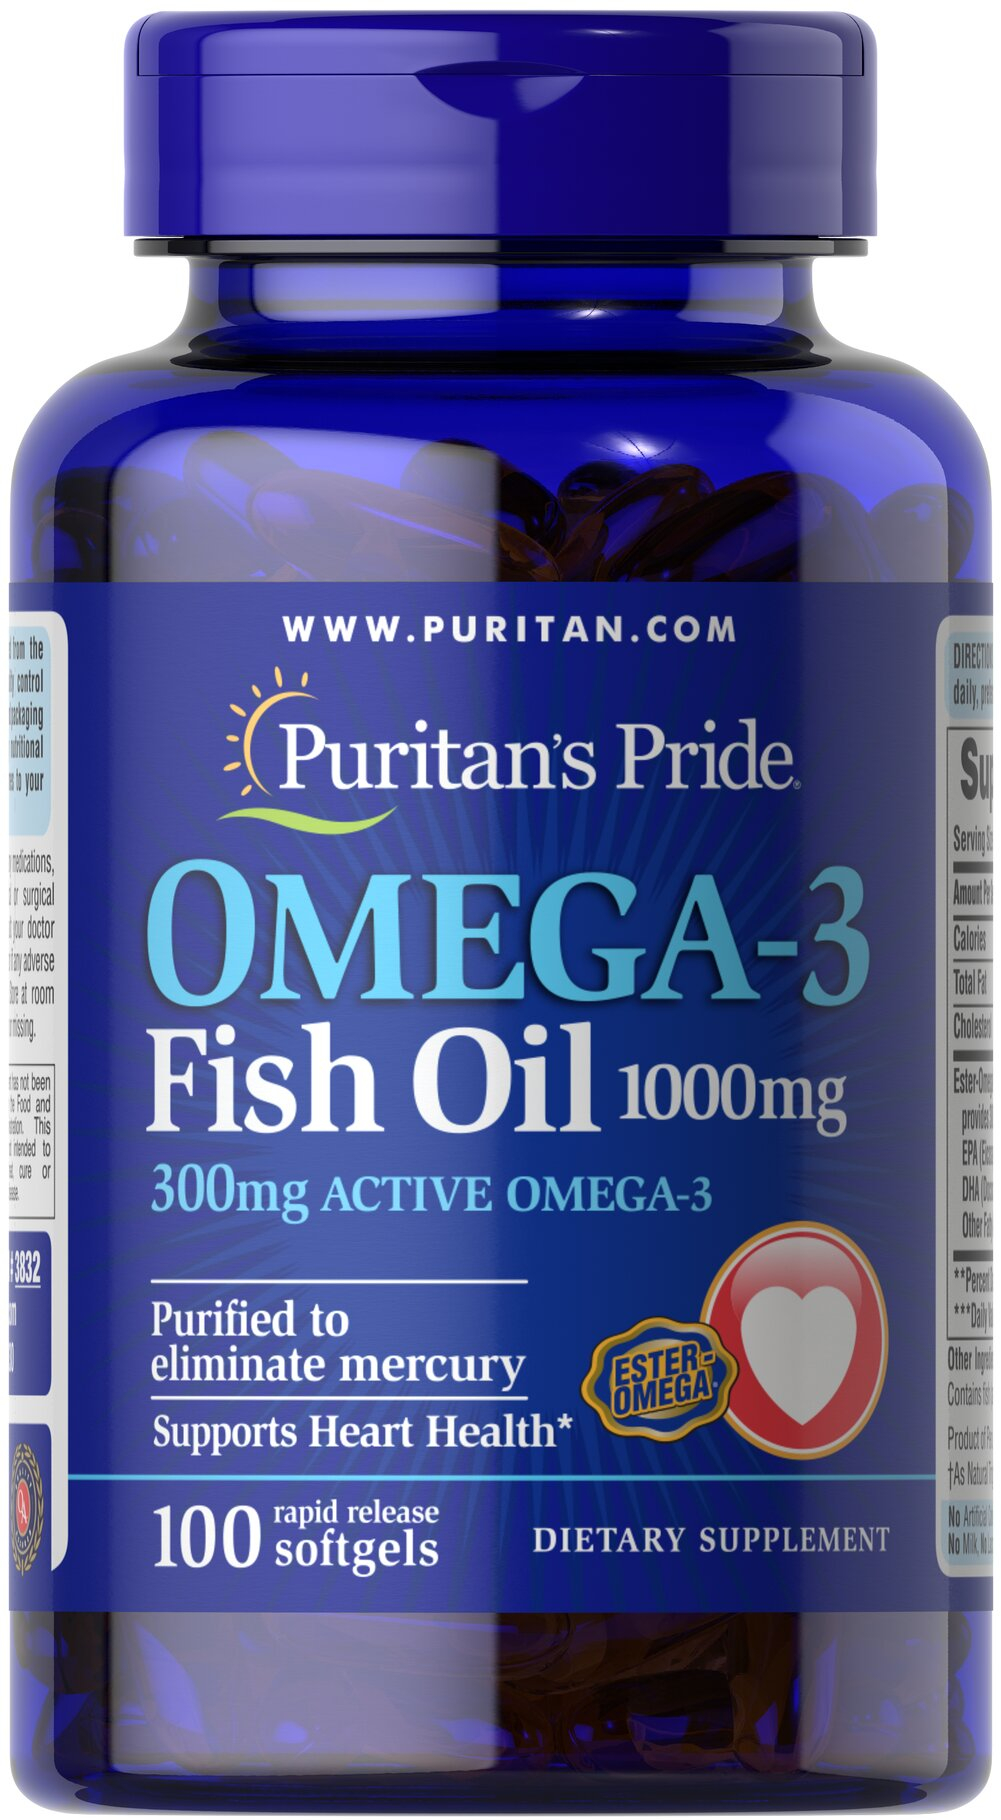 "Omega-3 Fish Oil 1000mg <p><span></span>Provides 300mg of active Omega-3.</p><p><span></span>Supports heart health.**</p><p><span></span>Purified to eliminate mercury.</p><p>This Ester-Omega® Fish Oil provides 300mg of total omega-3 fatty acids, comprising of EPA, DHA and other fatty acids. EPA and DHA fatty acids support heart health, provide an energy source for your body and are ""good"" fats that can help balanc"